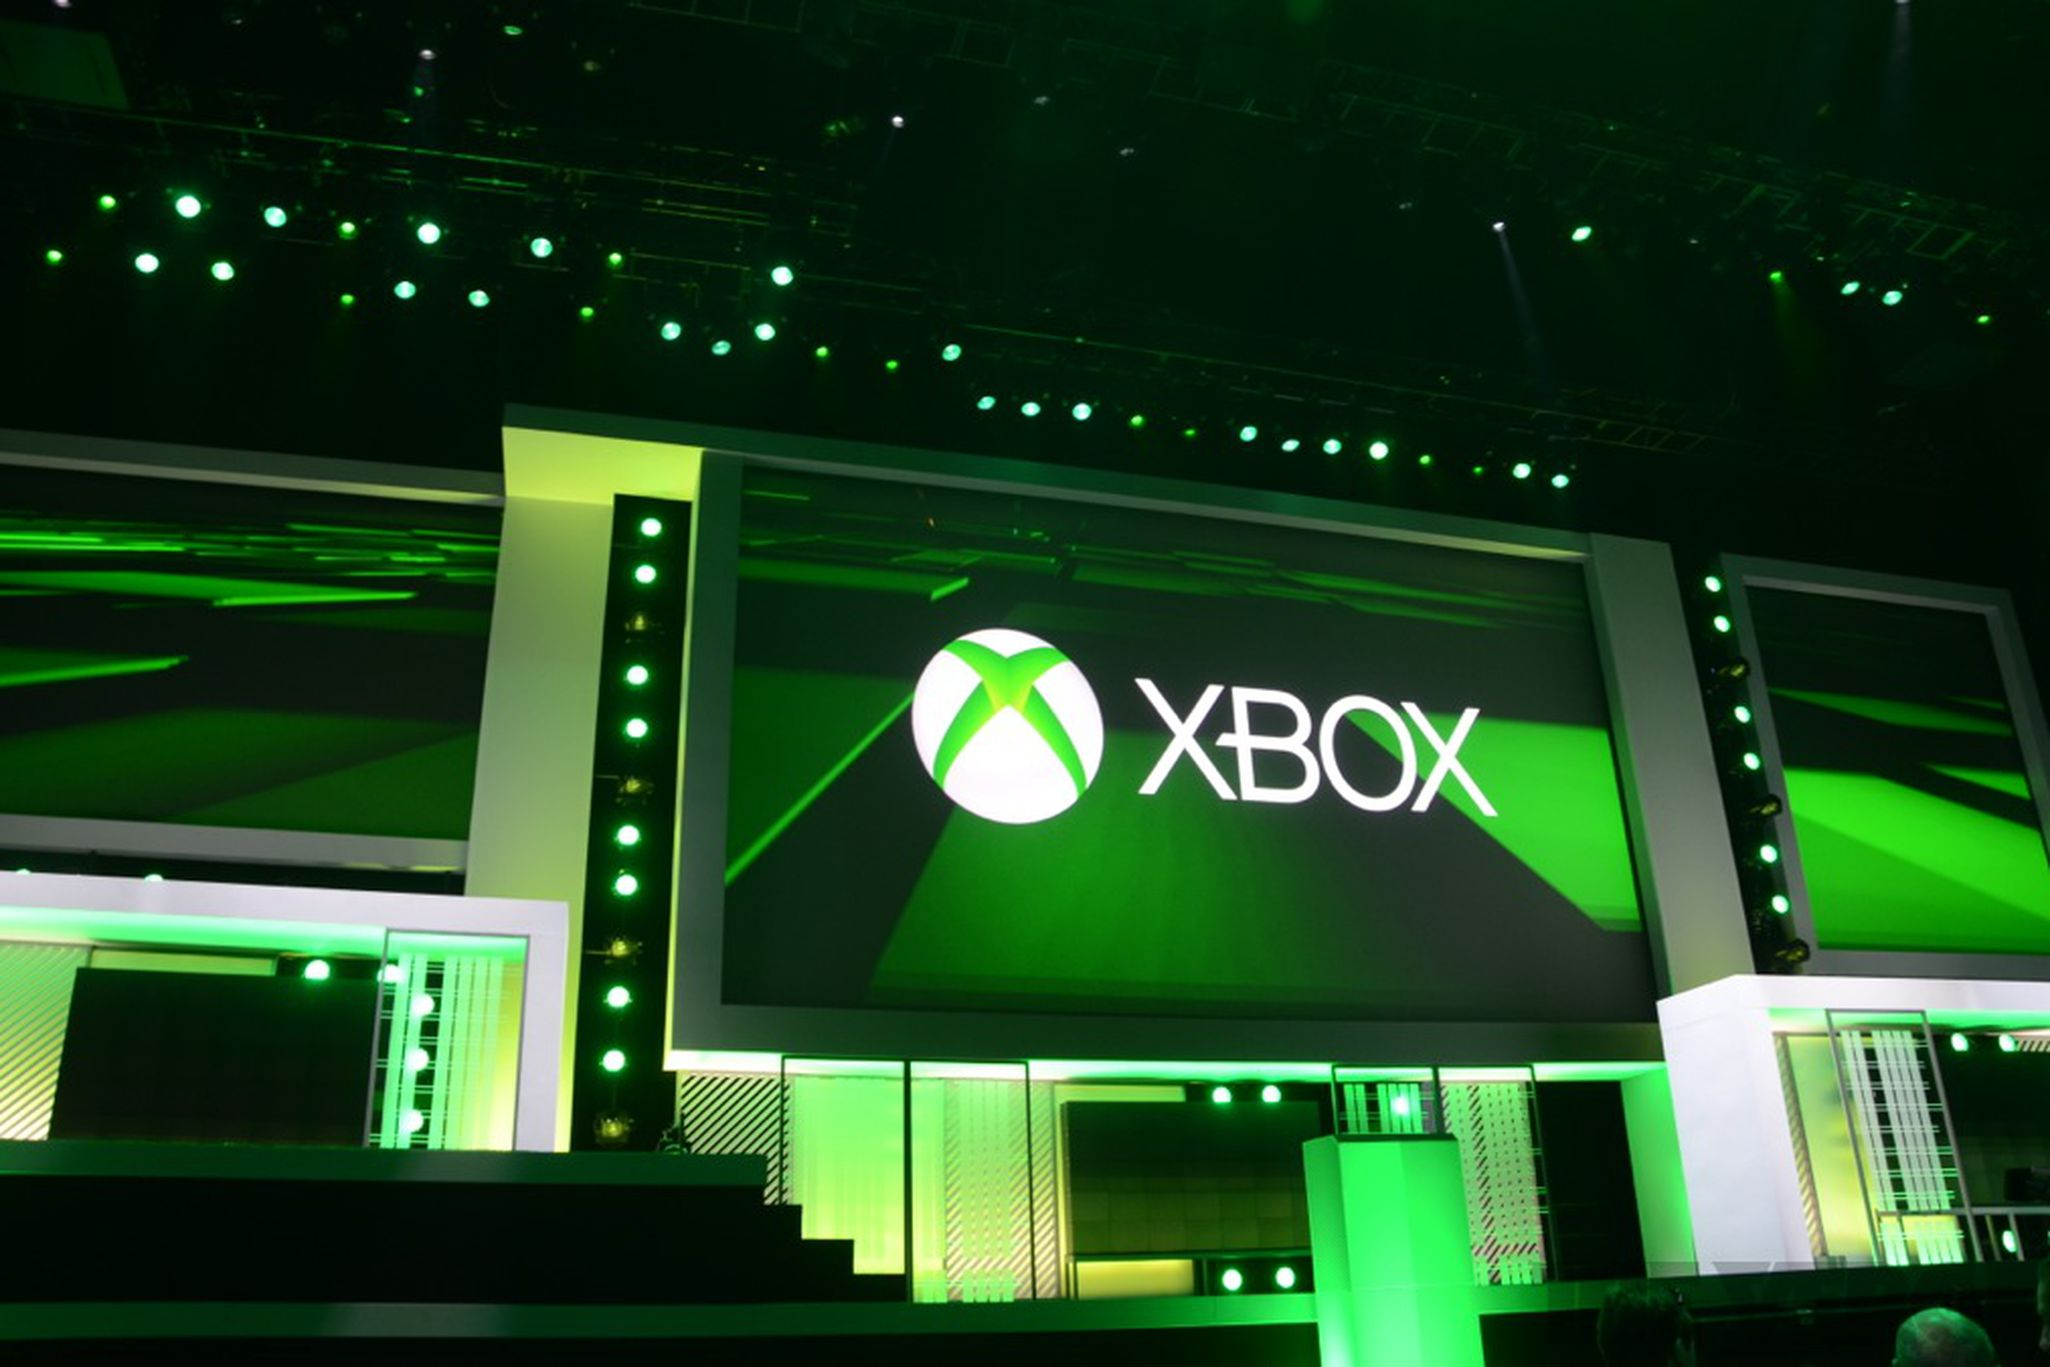 Xbox at E3 2013: everything you need to know | The Verge